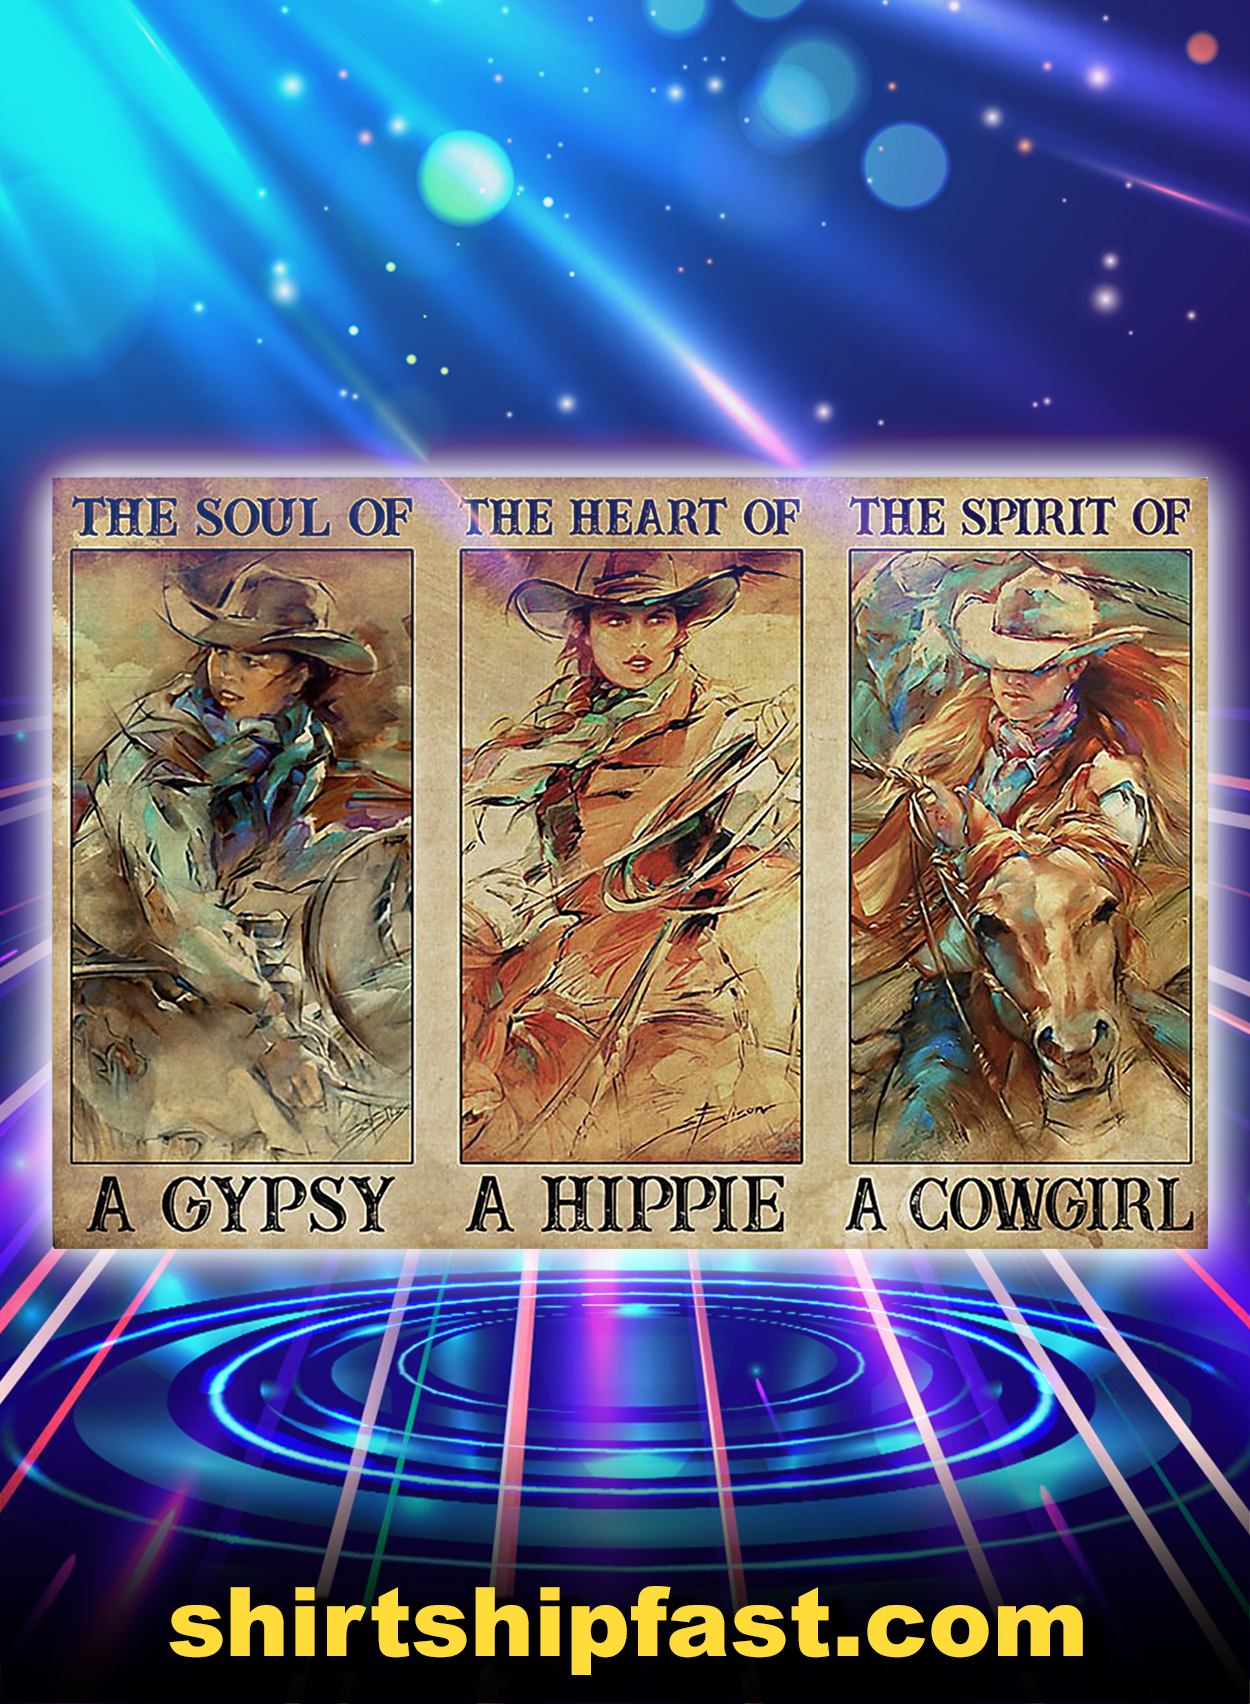 Spirit of a cowgirl the soul of a gypsy poster - A2